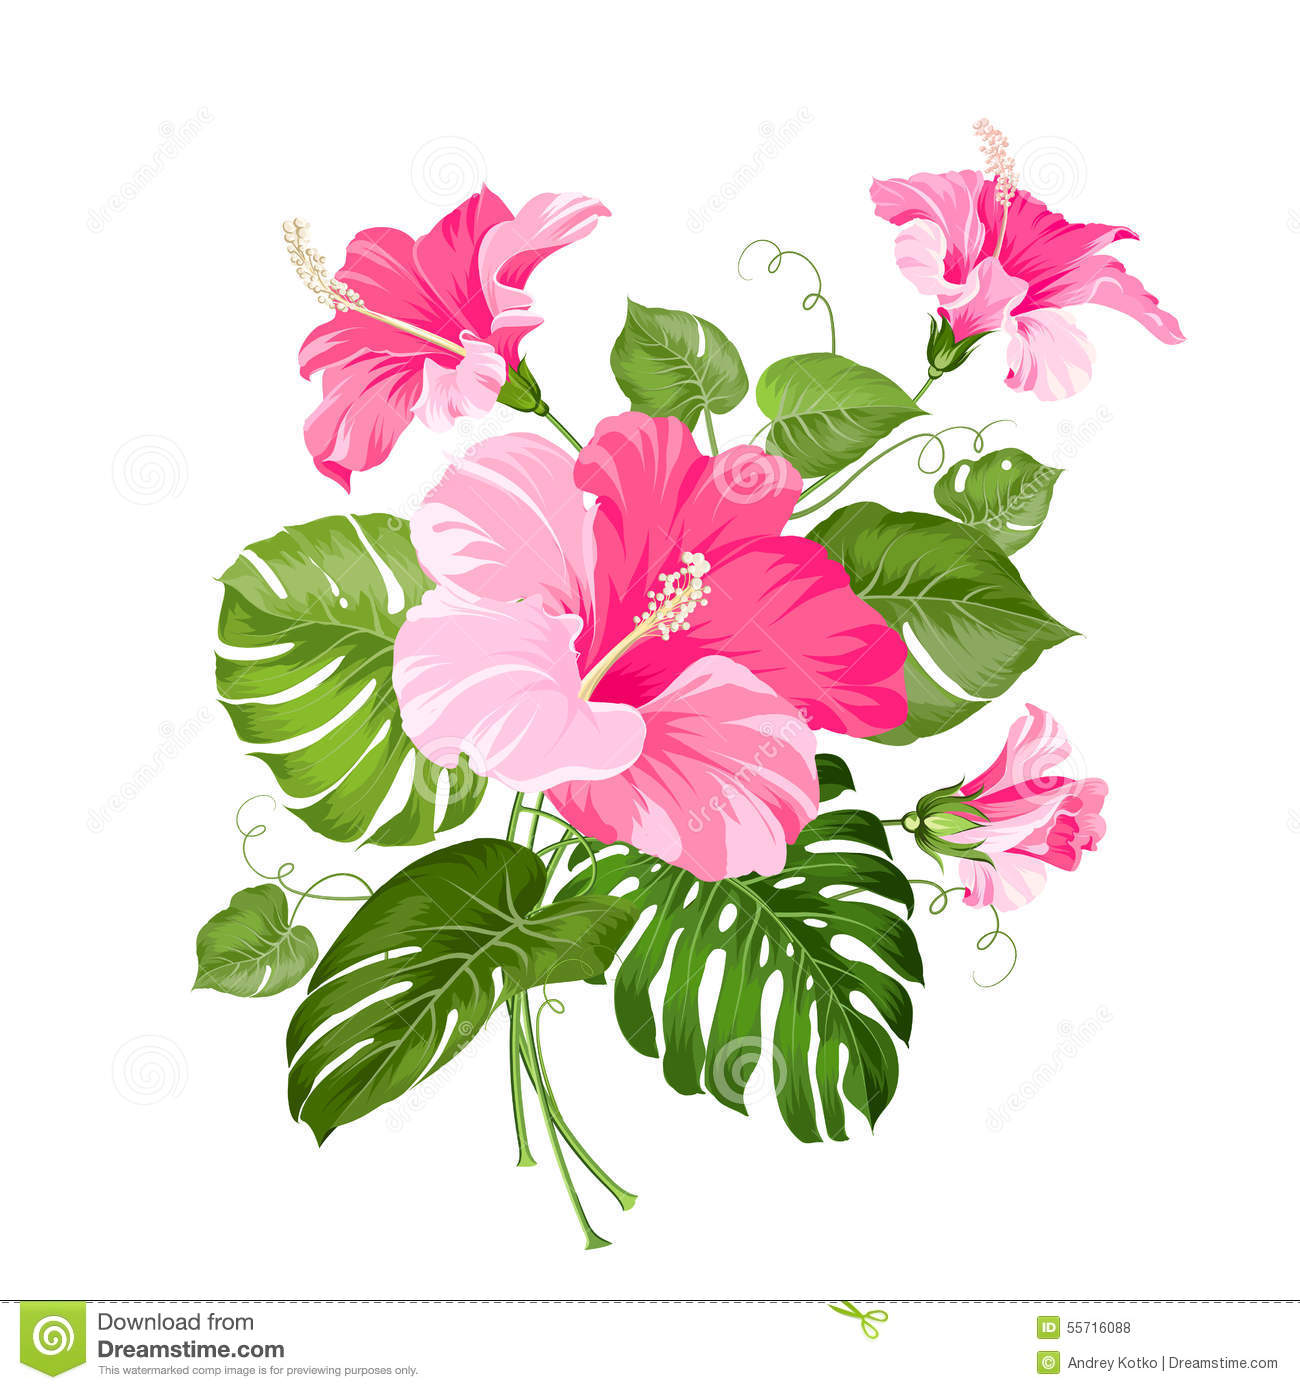 tropical flower garland stock vector illustration of graphic 55716088 hibiscus flower clip art in black hibiscus flower clipart